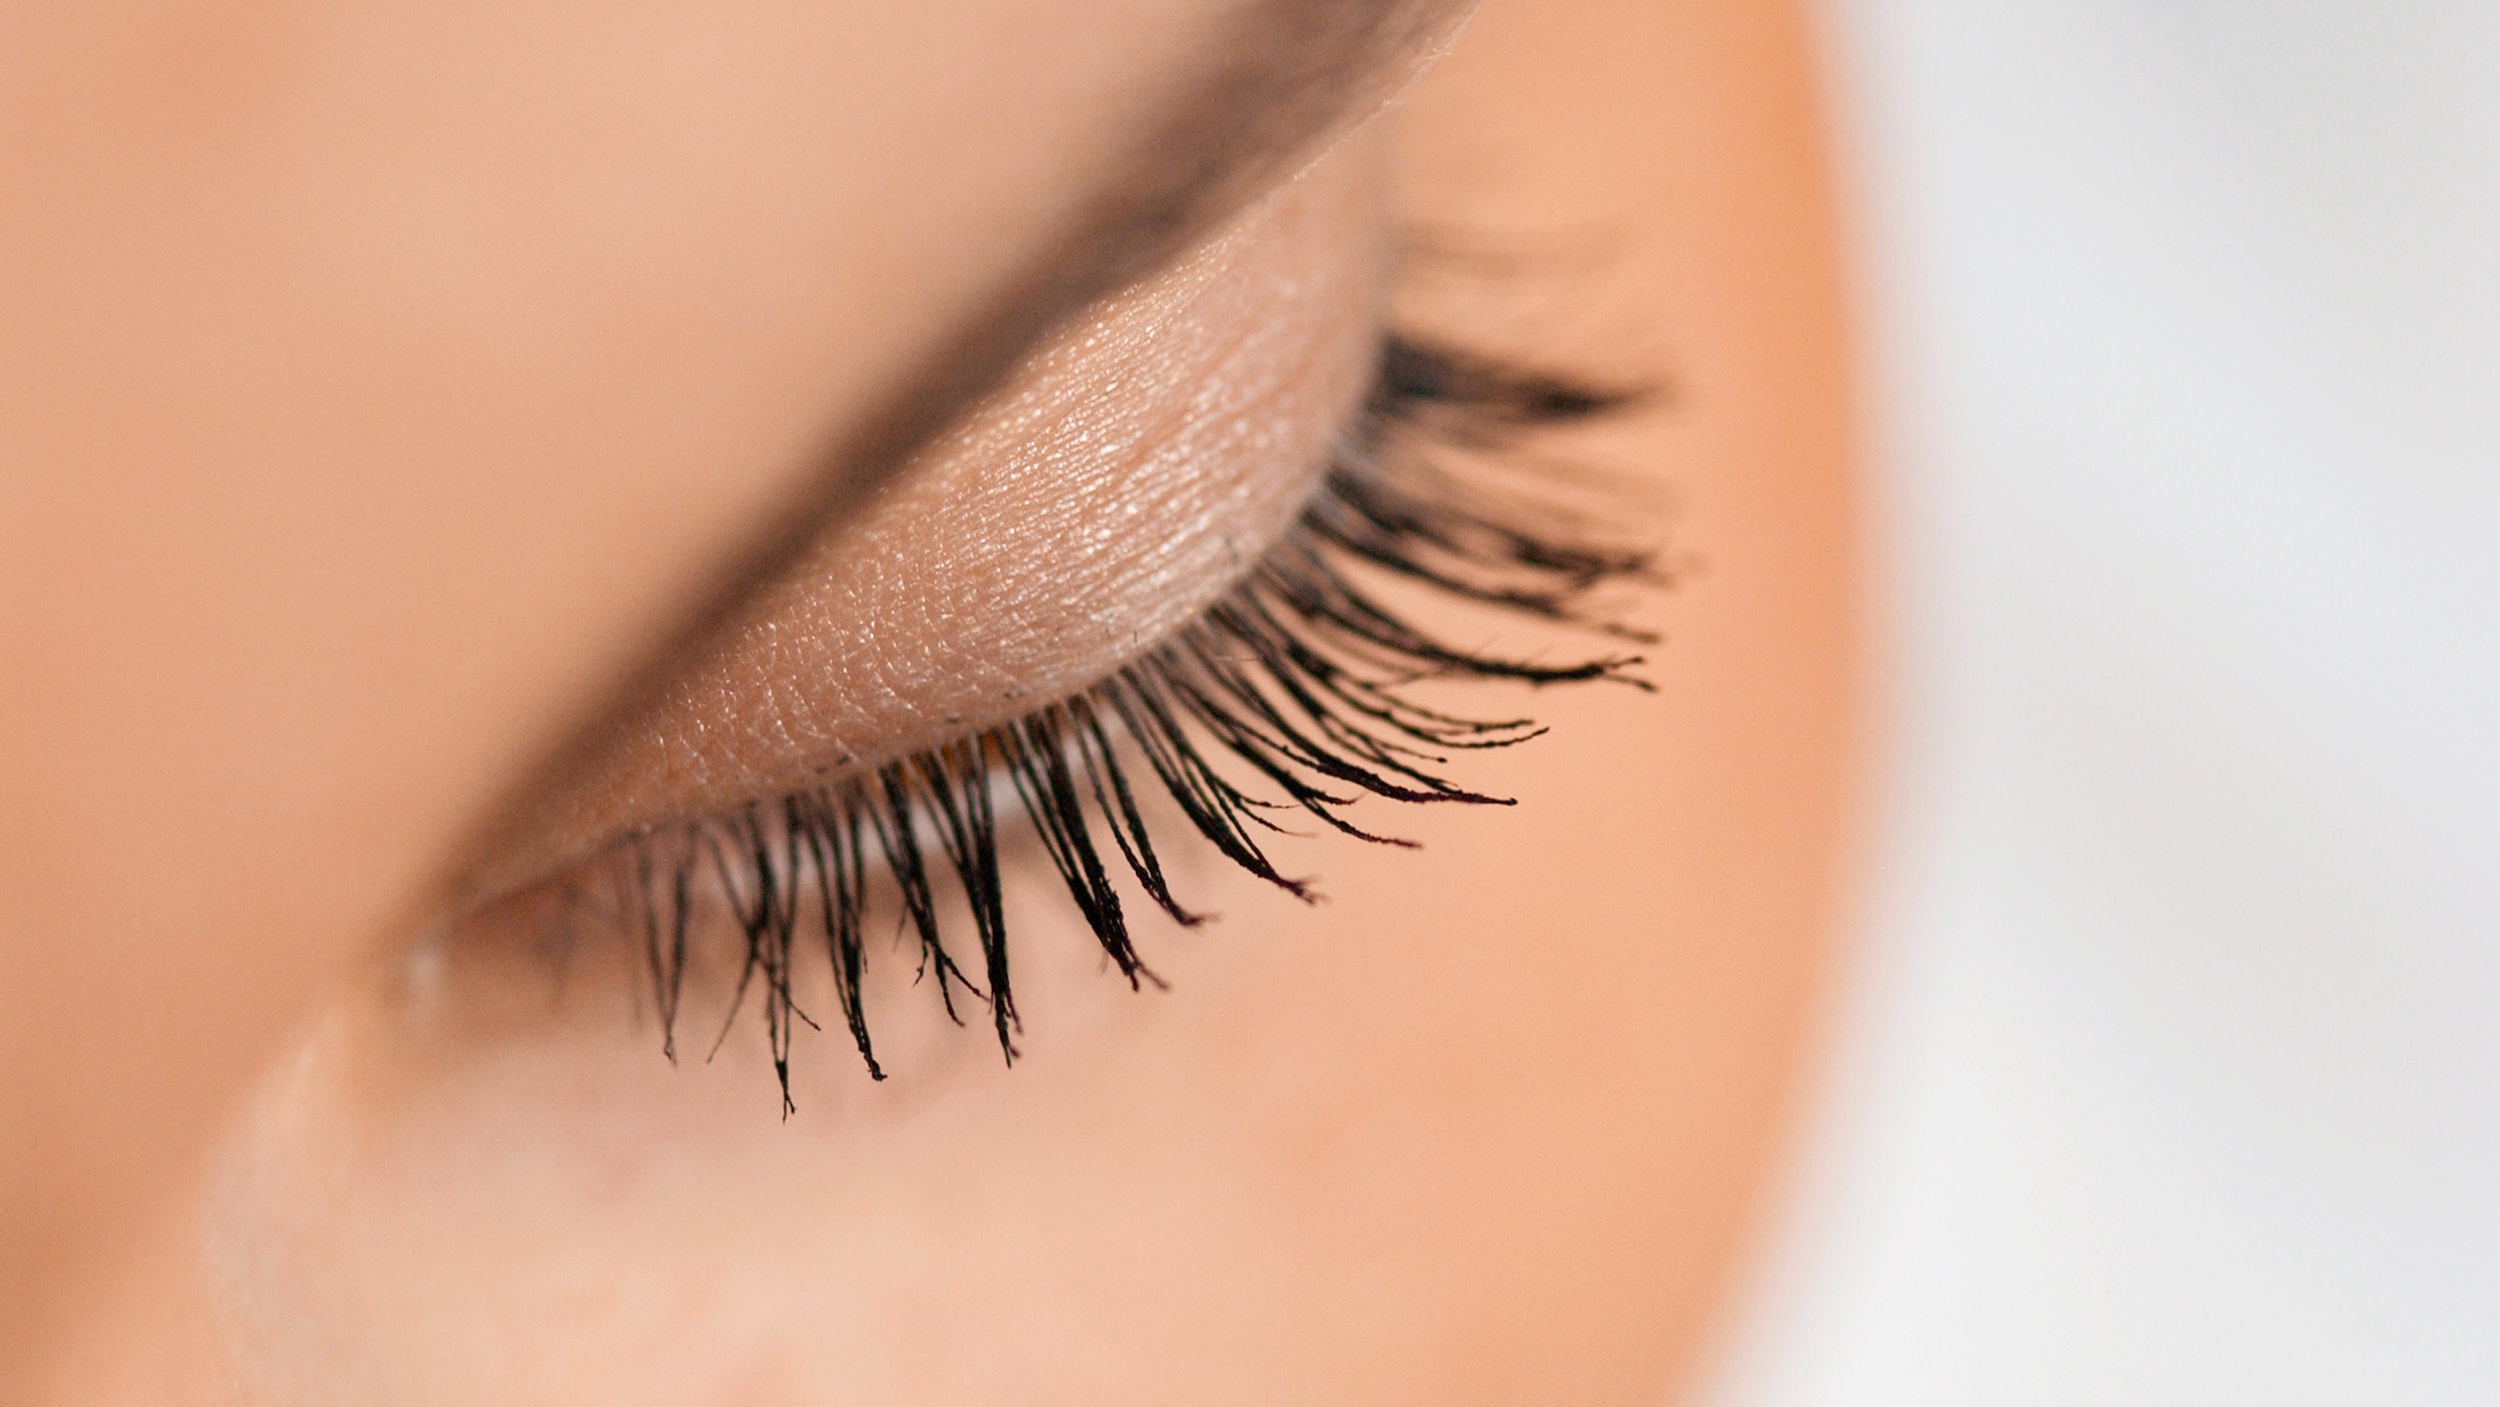 eyelashes-today-170424-tease_ef671d666506ad4c9ca1639c041a527a